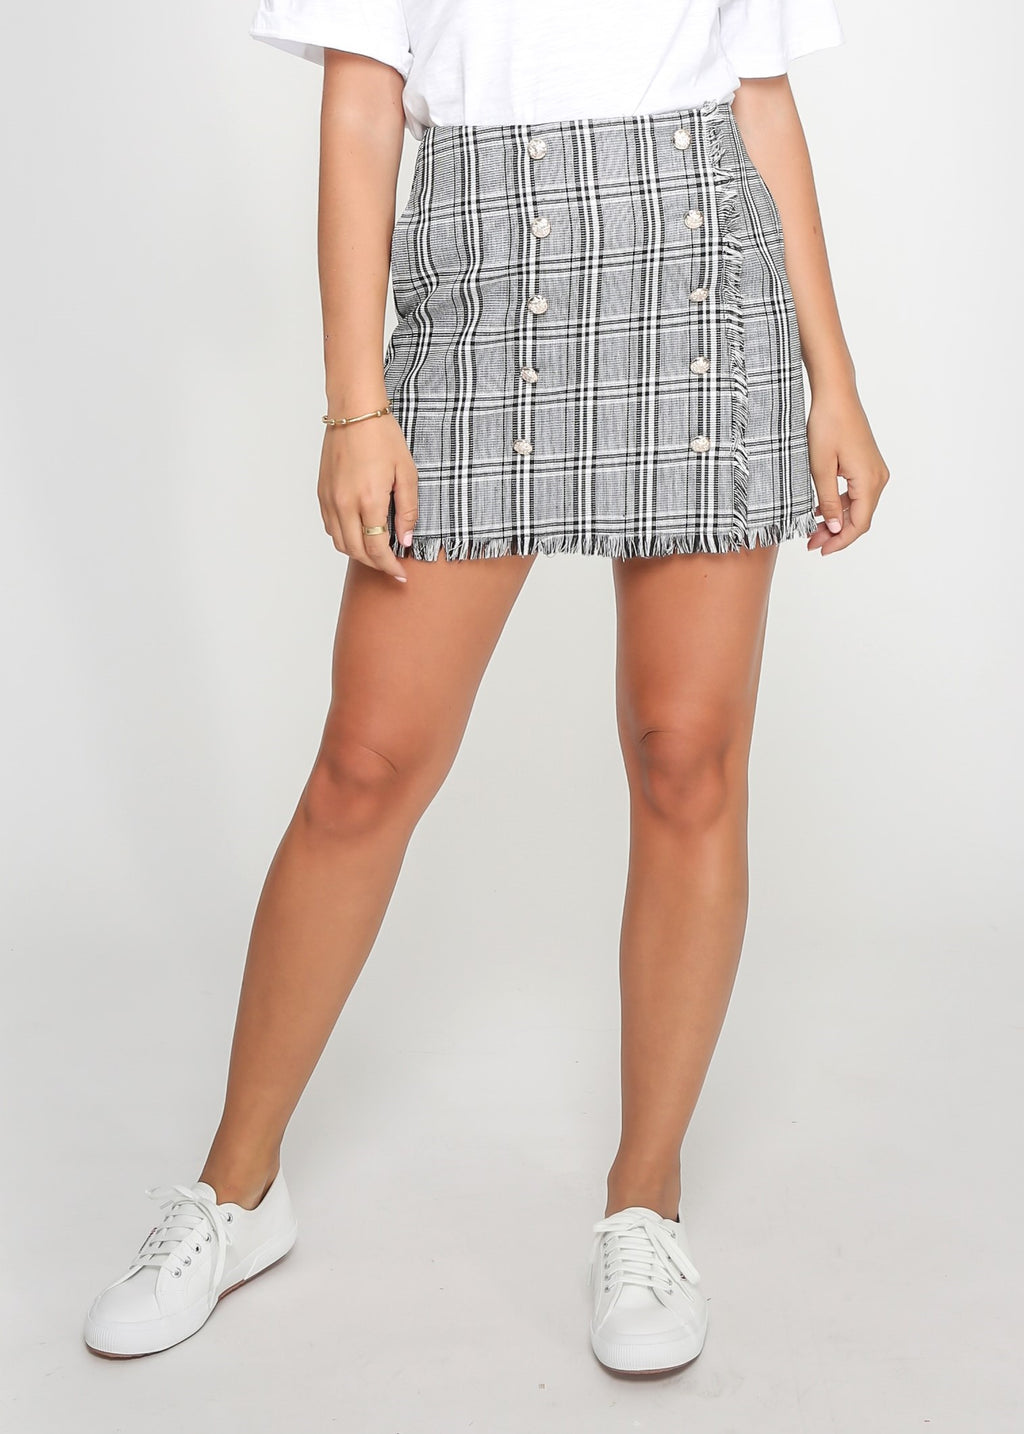 MILLY MINI SKIRT - CHECK PRINT - MARK DOWN MADNESS